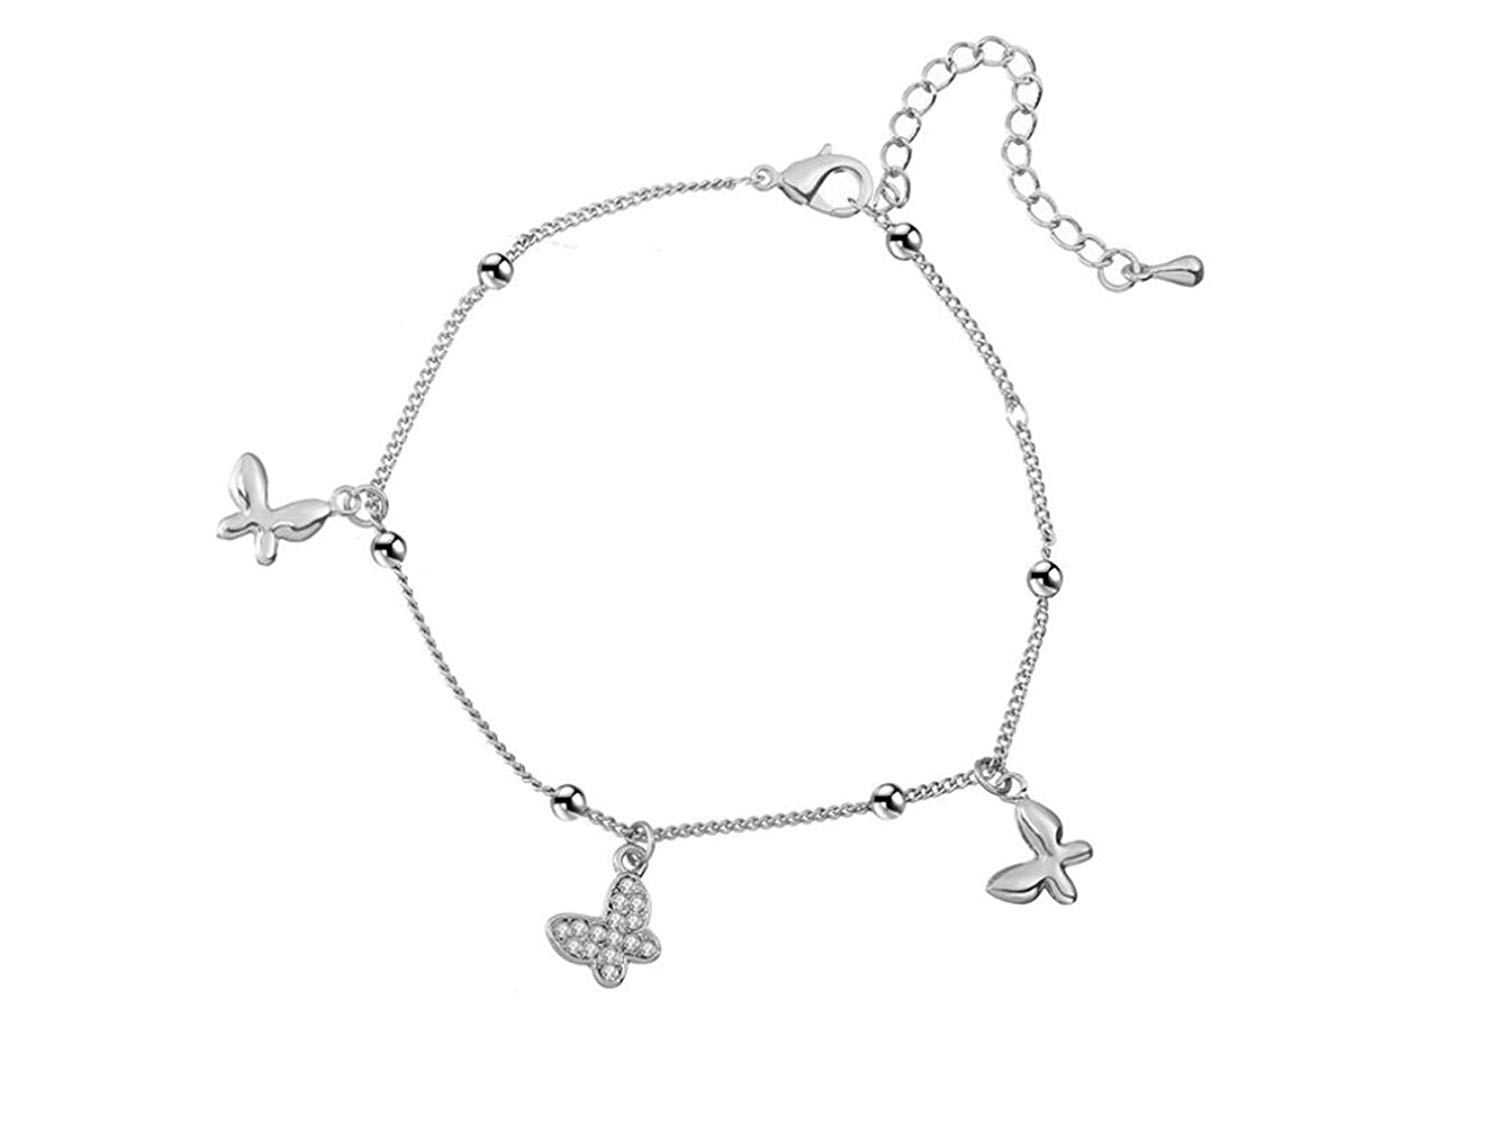 PORPI-JOJO Butterfly Foot Beach Jewelry Charm Anklet Bracelets Animal Anklets for Women